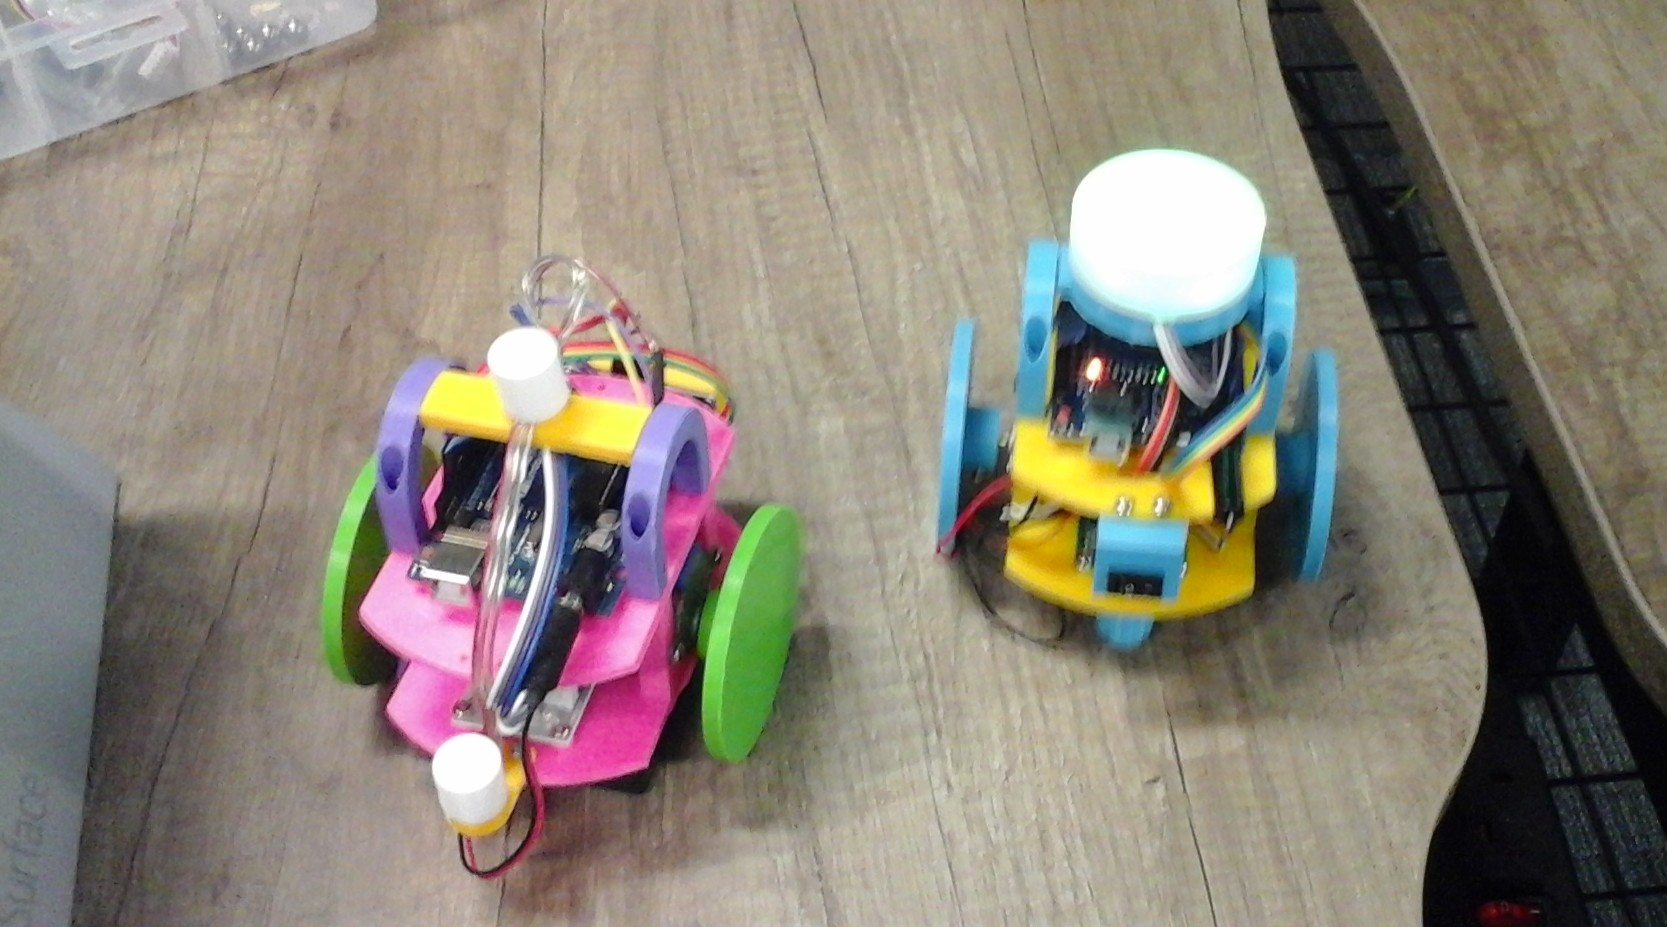 The Hull Pixelbot 2.0!